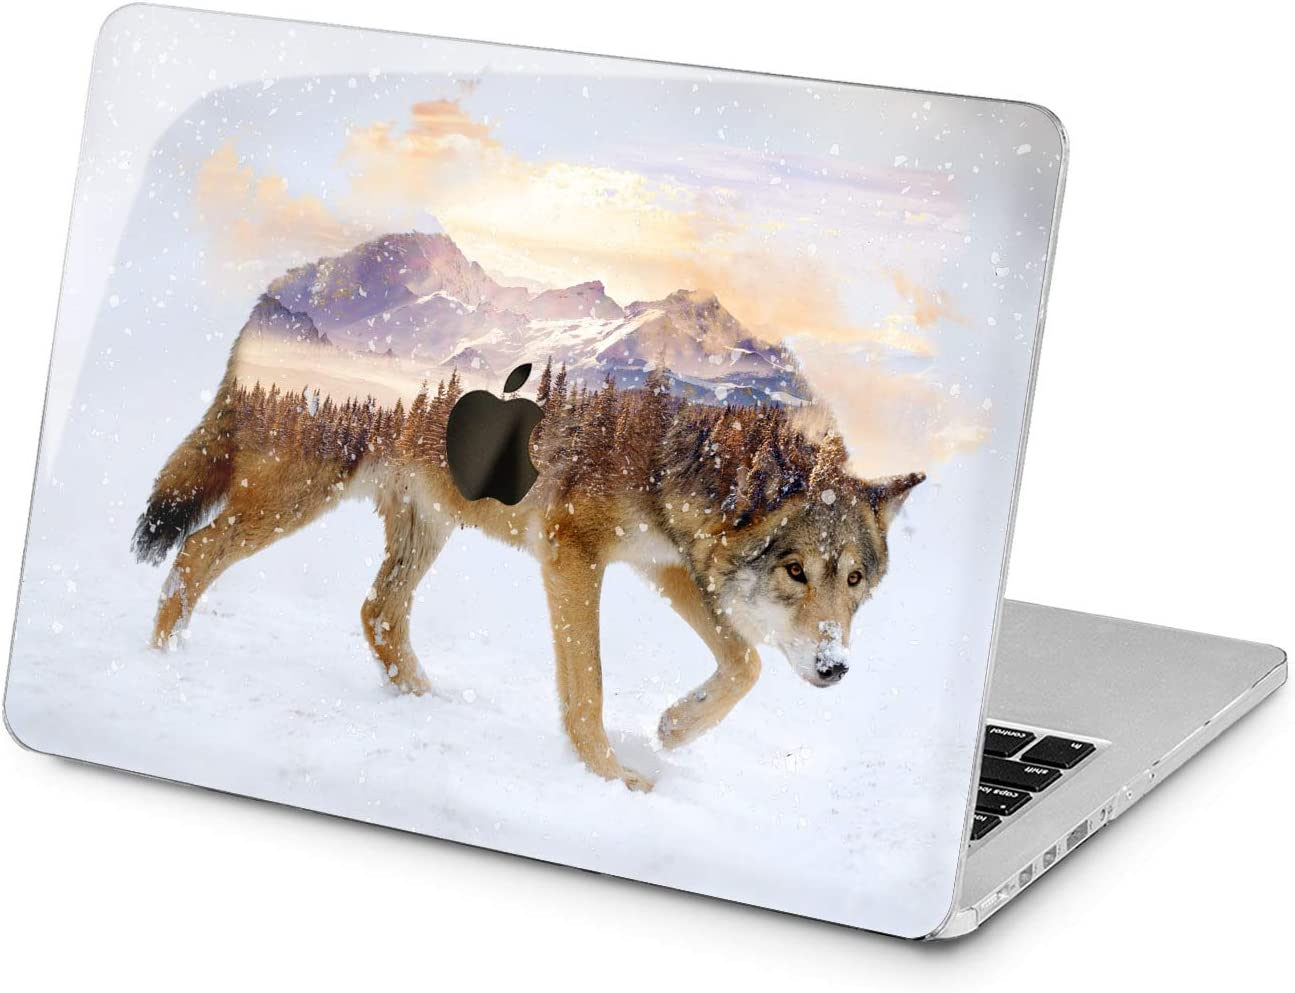 "Cavka Hard Shell Case for Apple MacBook Pro 13"" 2019 15"" 2018 Air 13"" 2020 Retina 2015 Mac 11"" Mac 12"" Protective Plastic Wolf View Glam Print Cover Animal Snow Laptop Design Forest Winter Mountain"